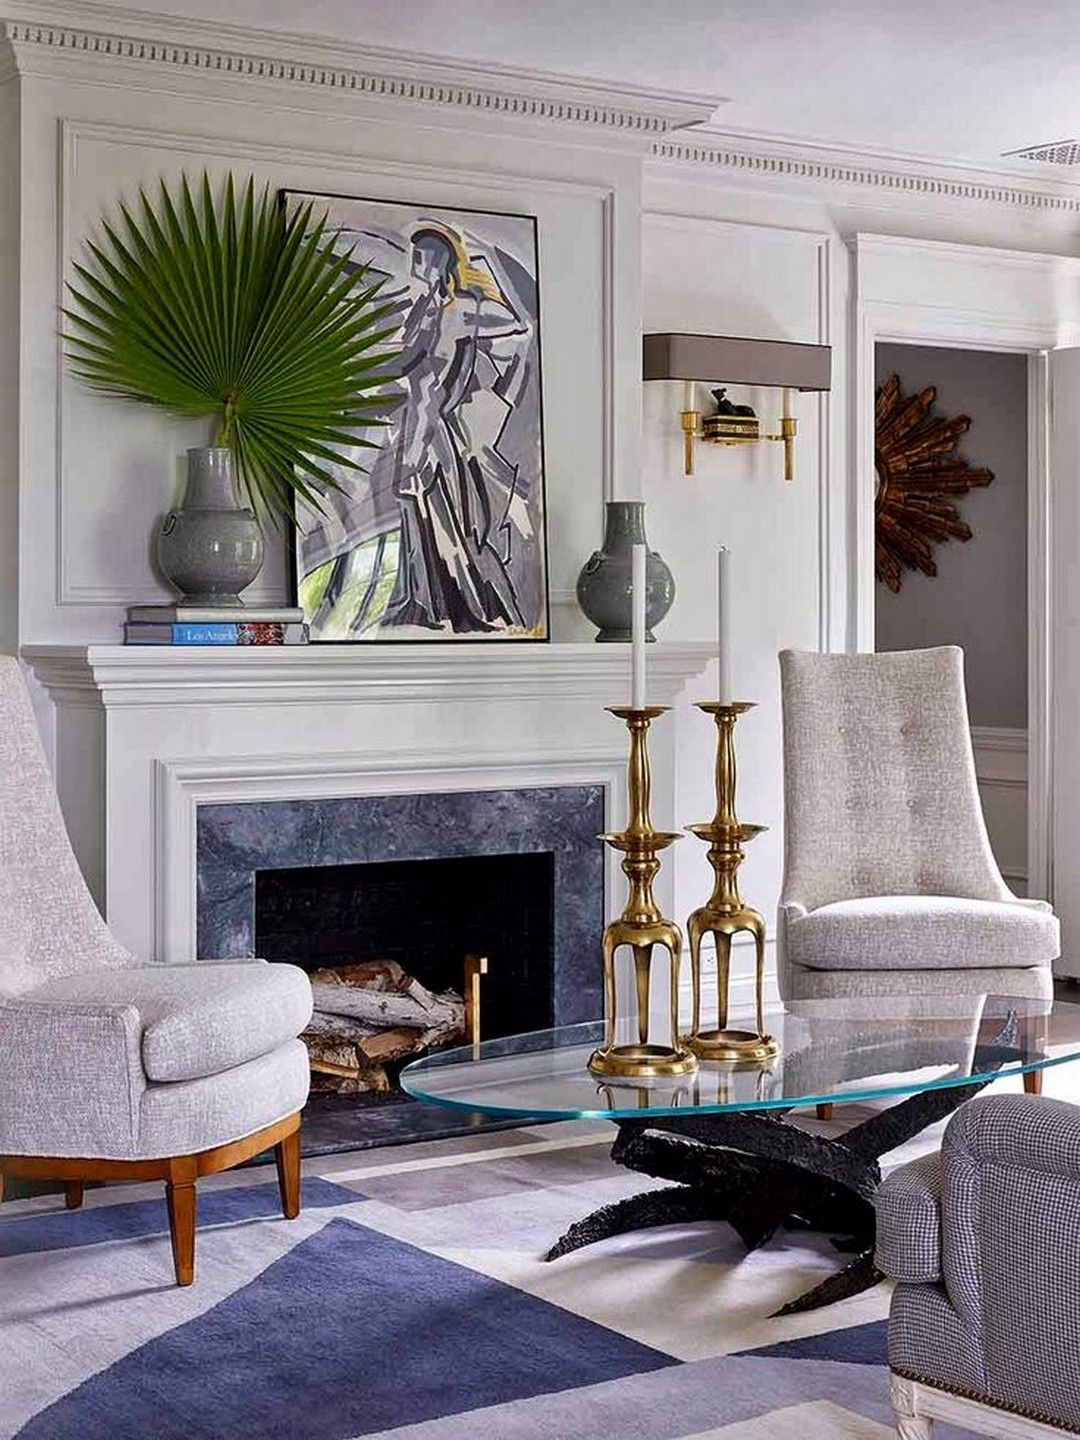 29 Luxurious Parisian Style Home Decor The Master Of Harmonious Living Goodnewsarchitecture Sophisticated Living Rooms Chic Living Room Chic Interior Design